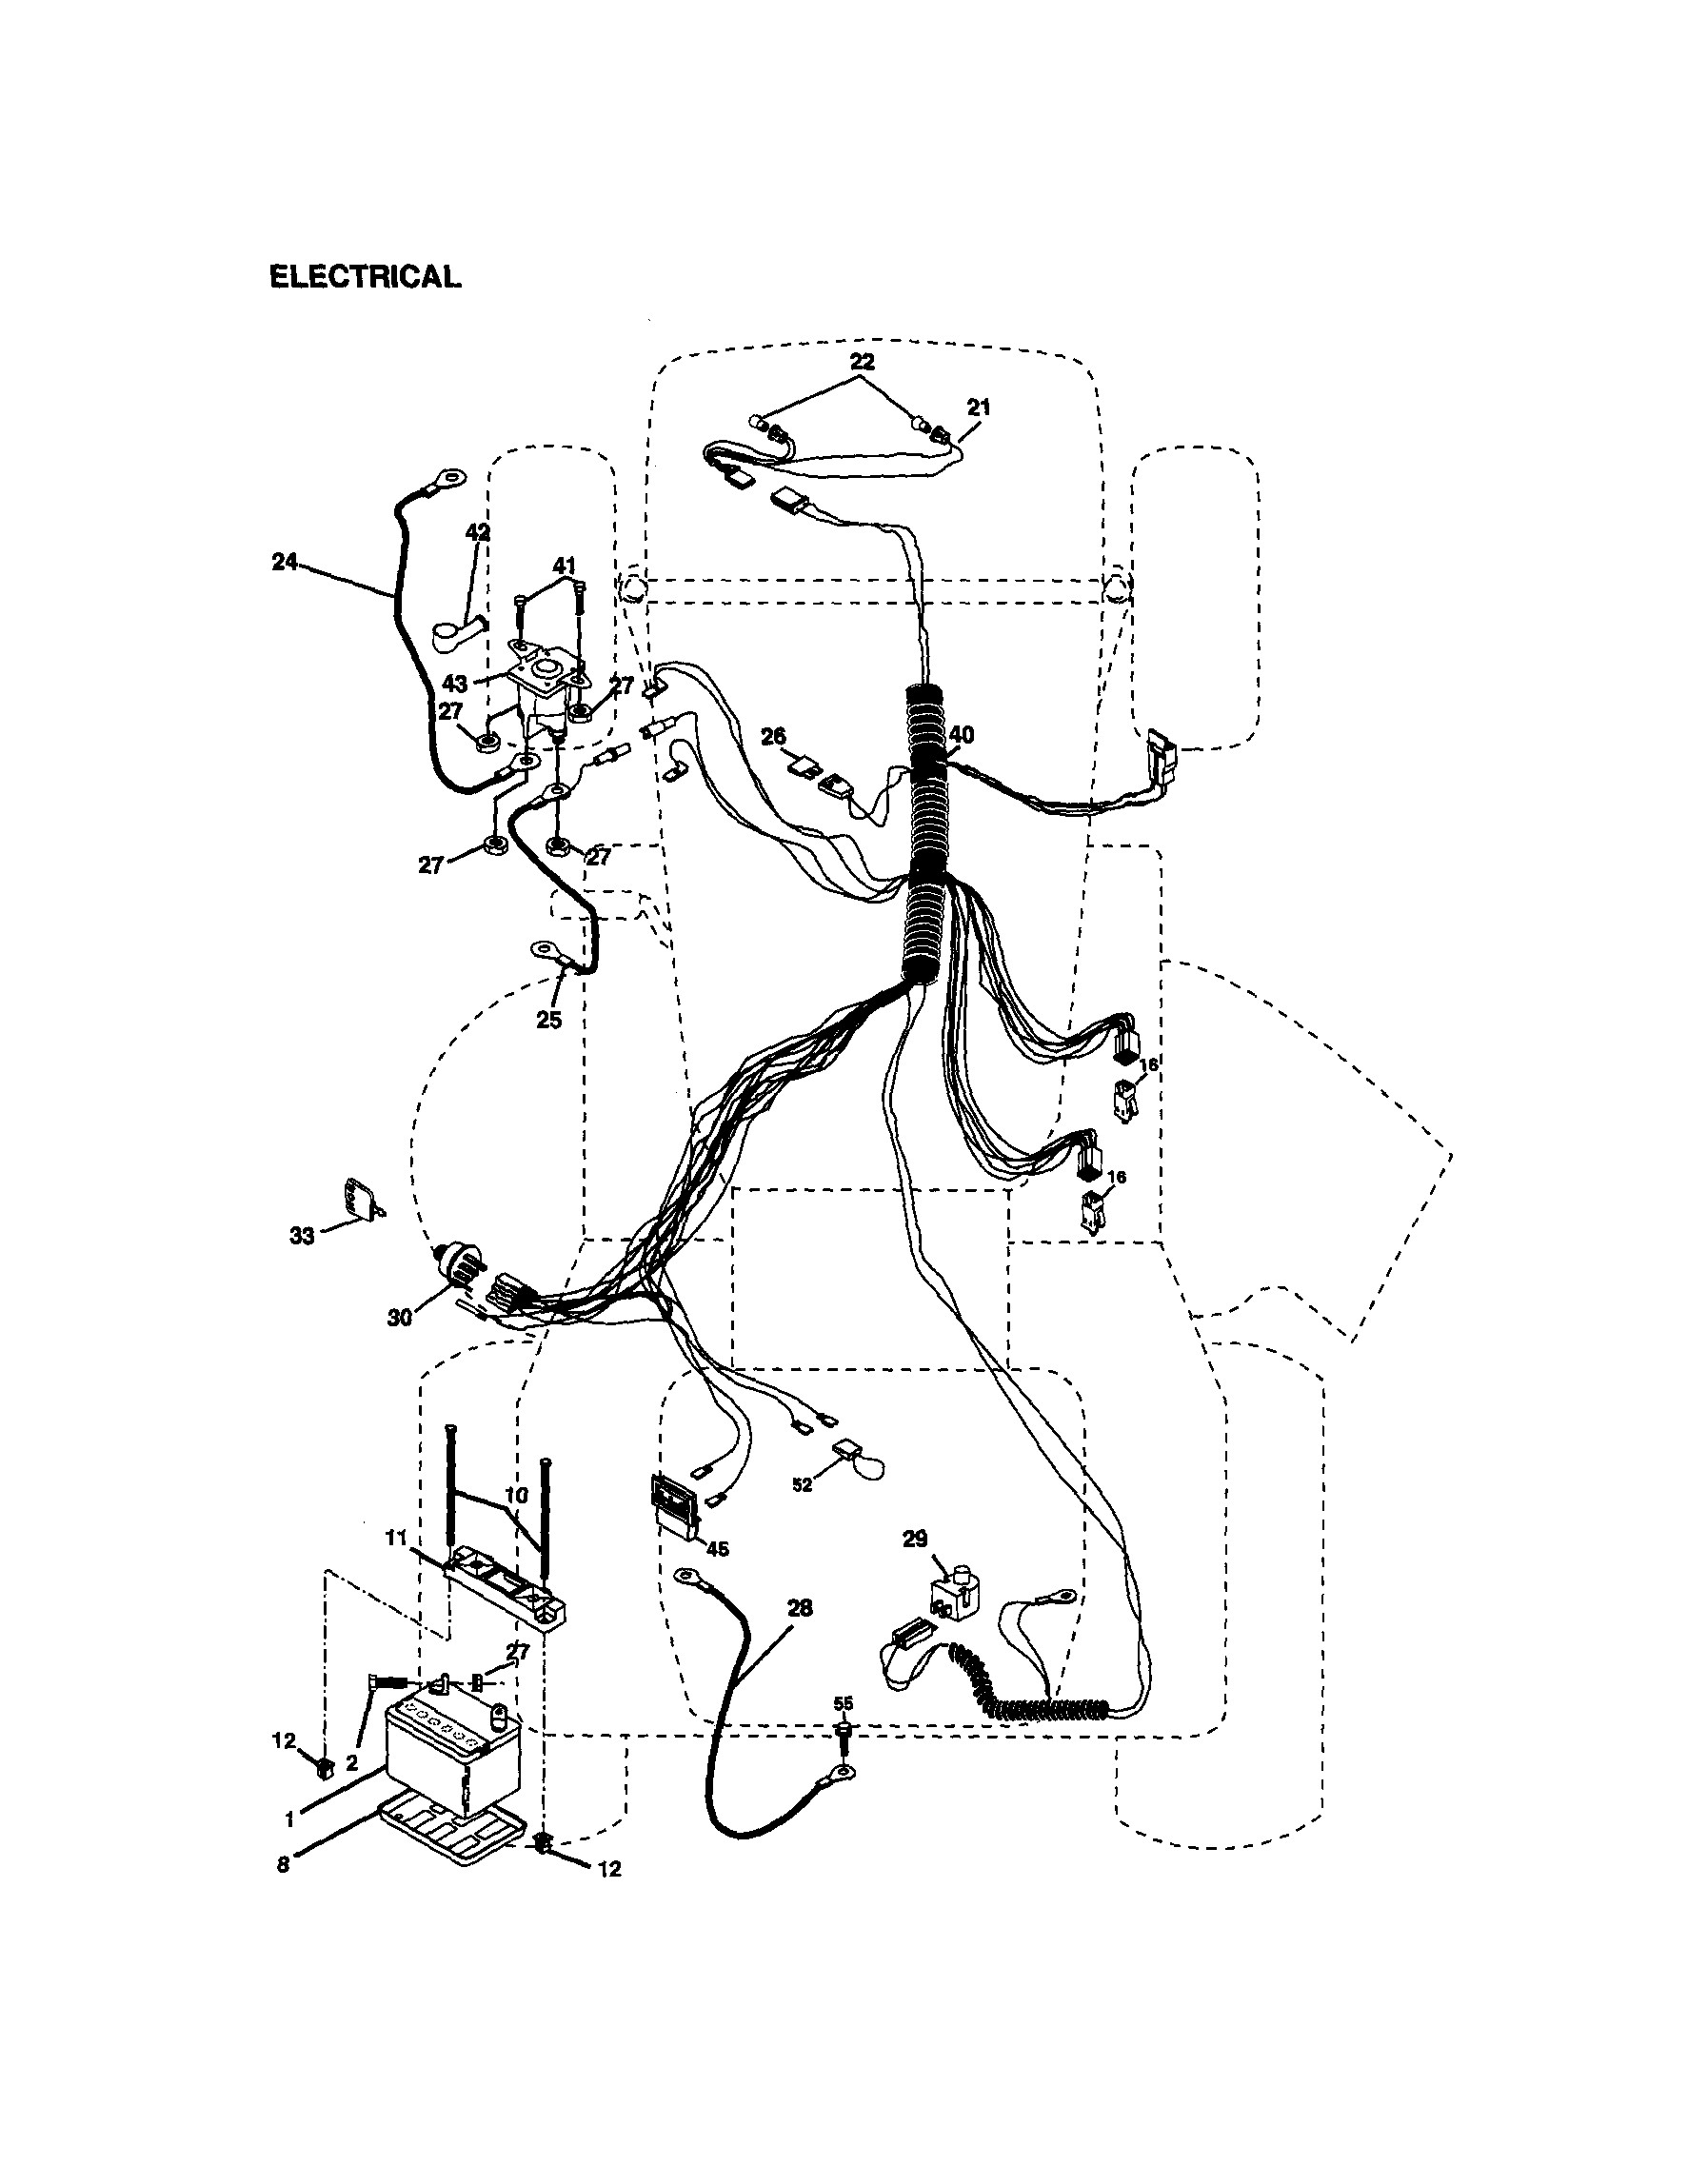 wiring diagram for a craftsman riding mower funky